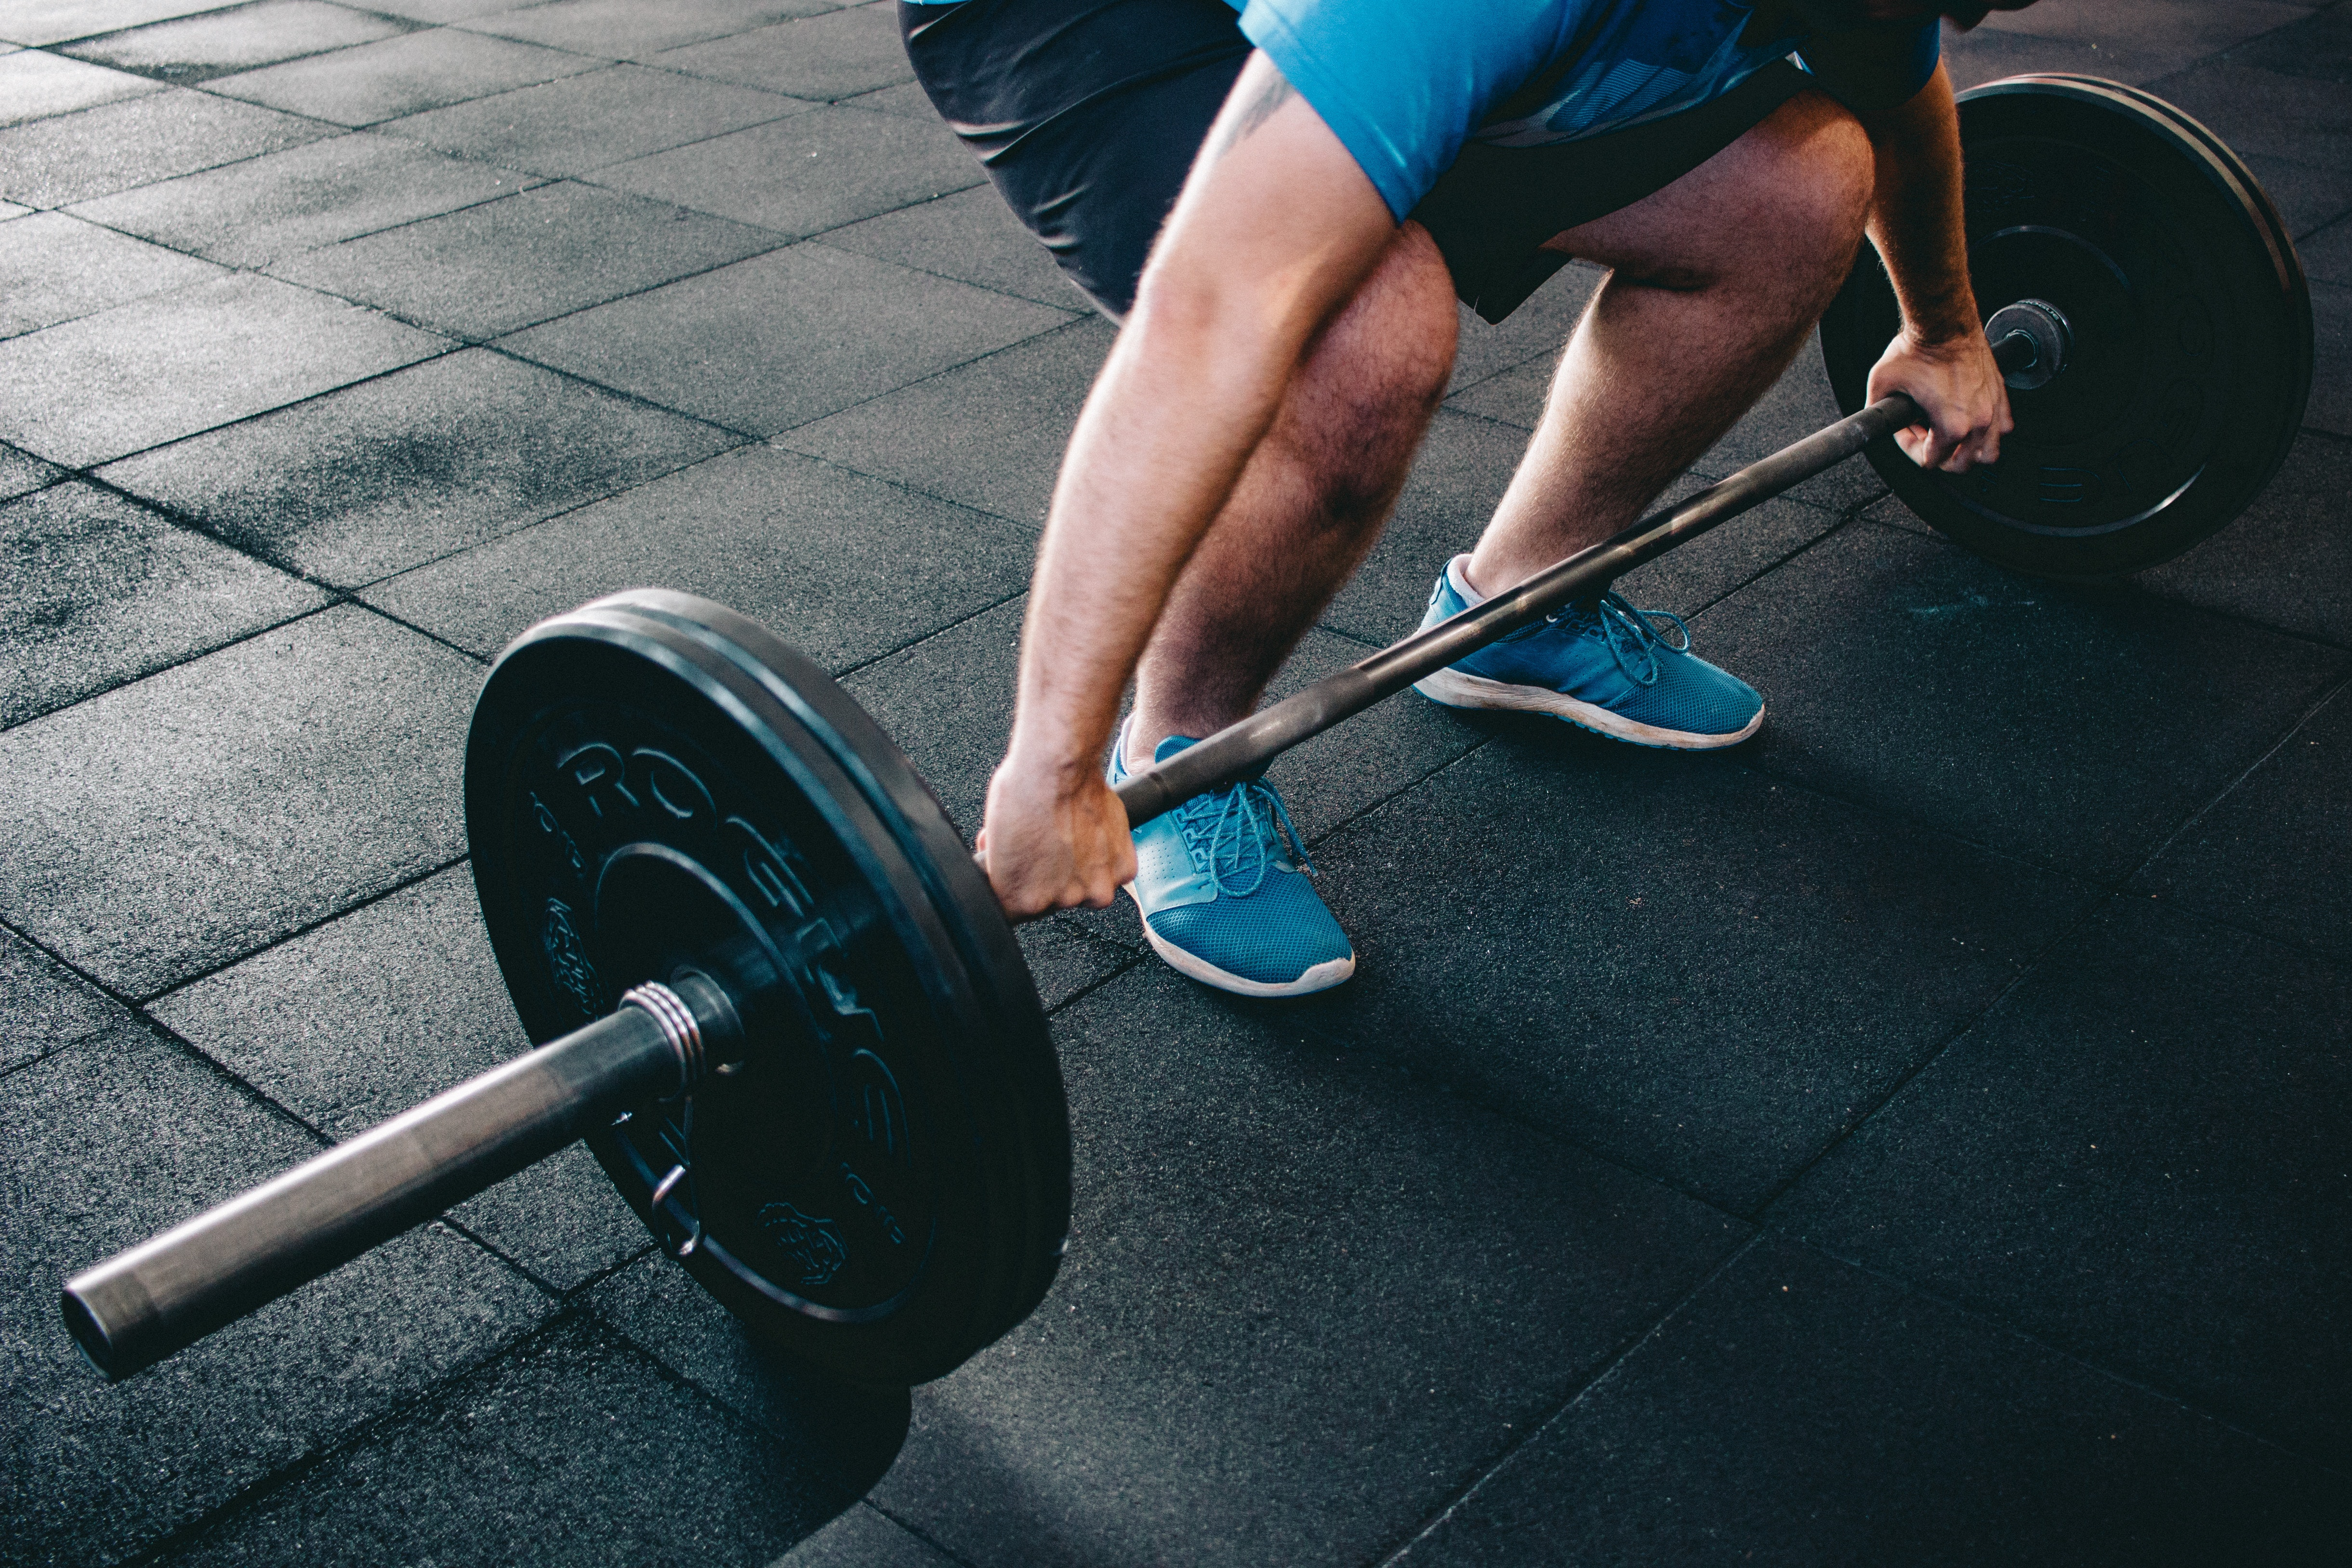 Man Holding Barbell, Barbell, Legs, Weights, Weightlifting, HQ Photo